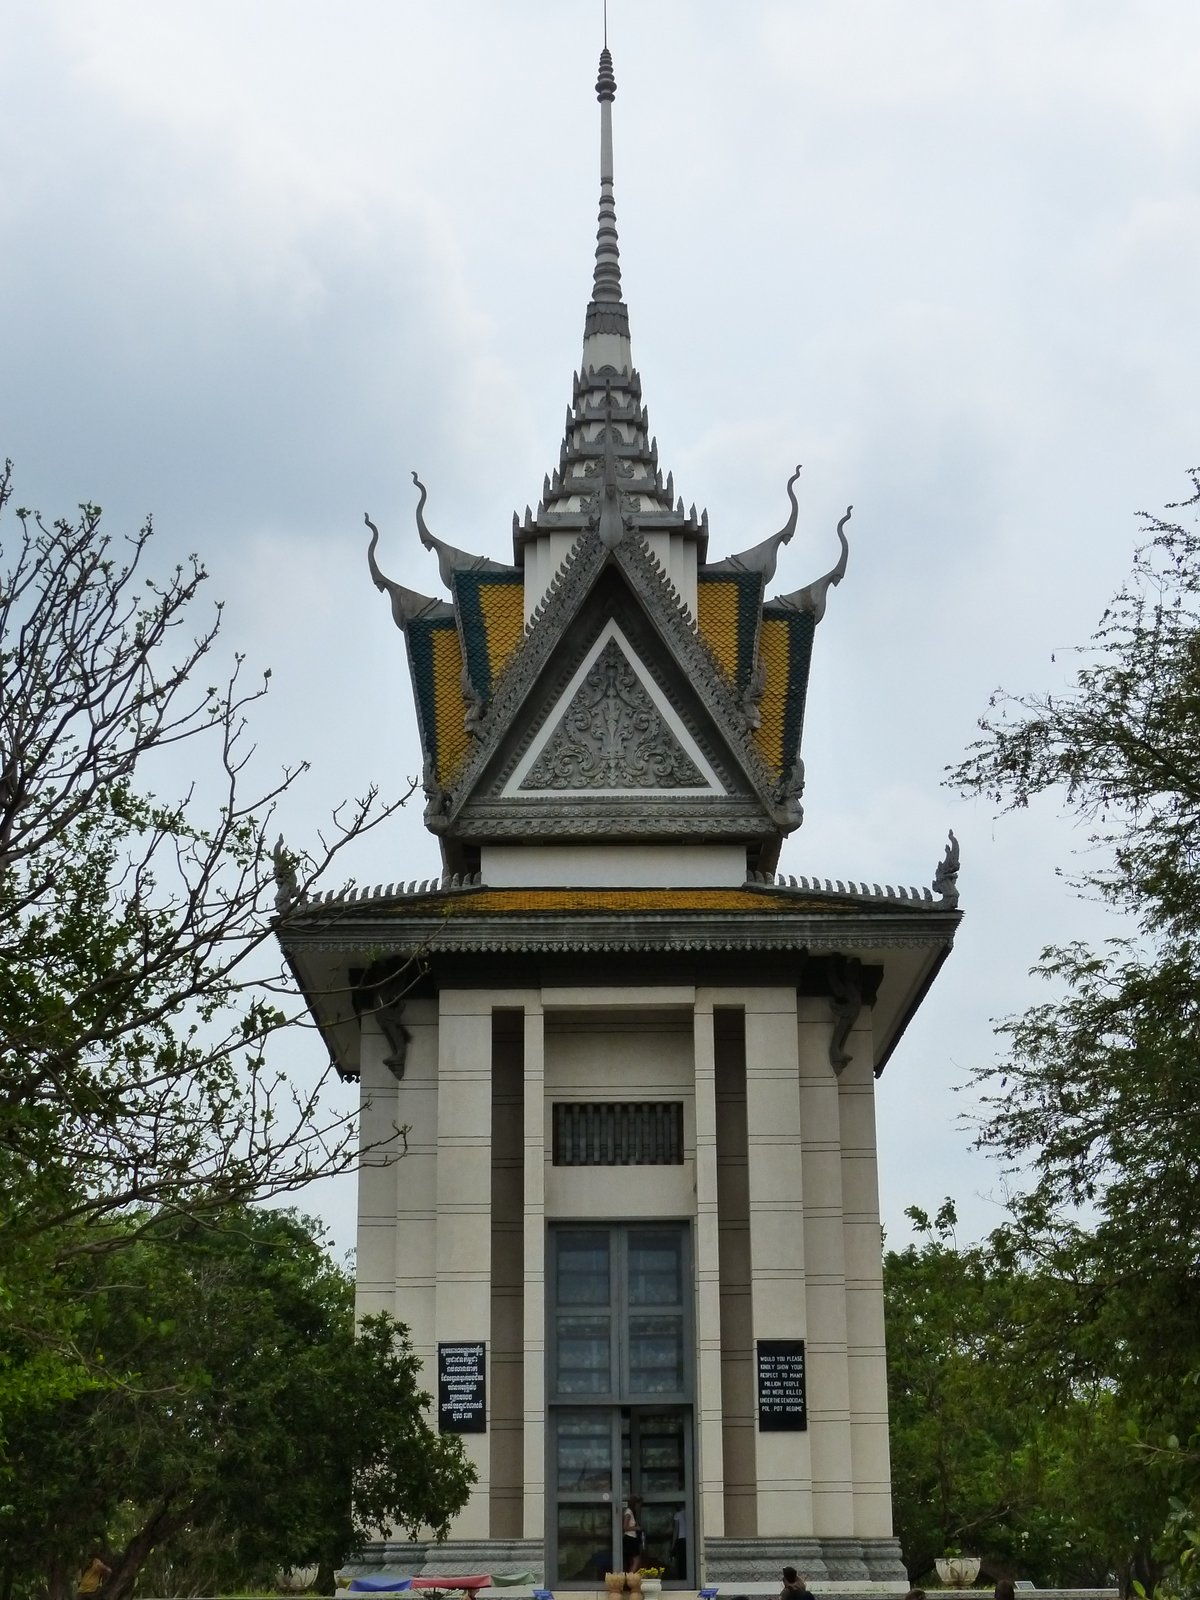 Memorial Stupa at Choeung Ek, containing the skulls of victims in 17 different levels. Combining both Buddhist and Hindu imagery, it is a sacred memorial to the more than 17,000 people who were executed here.